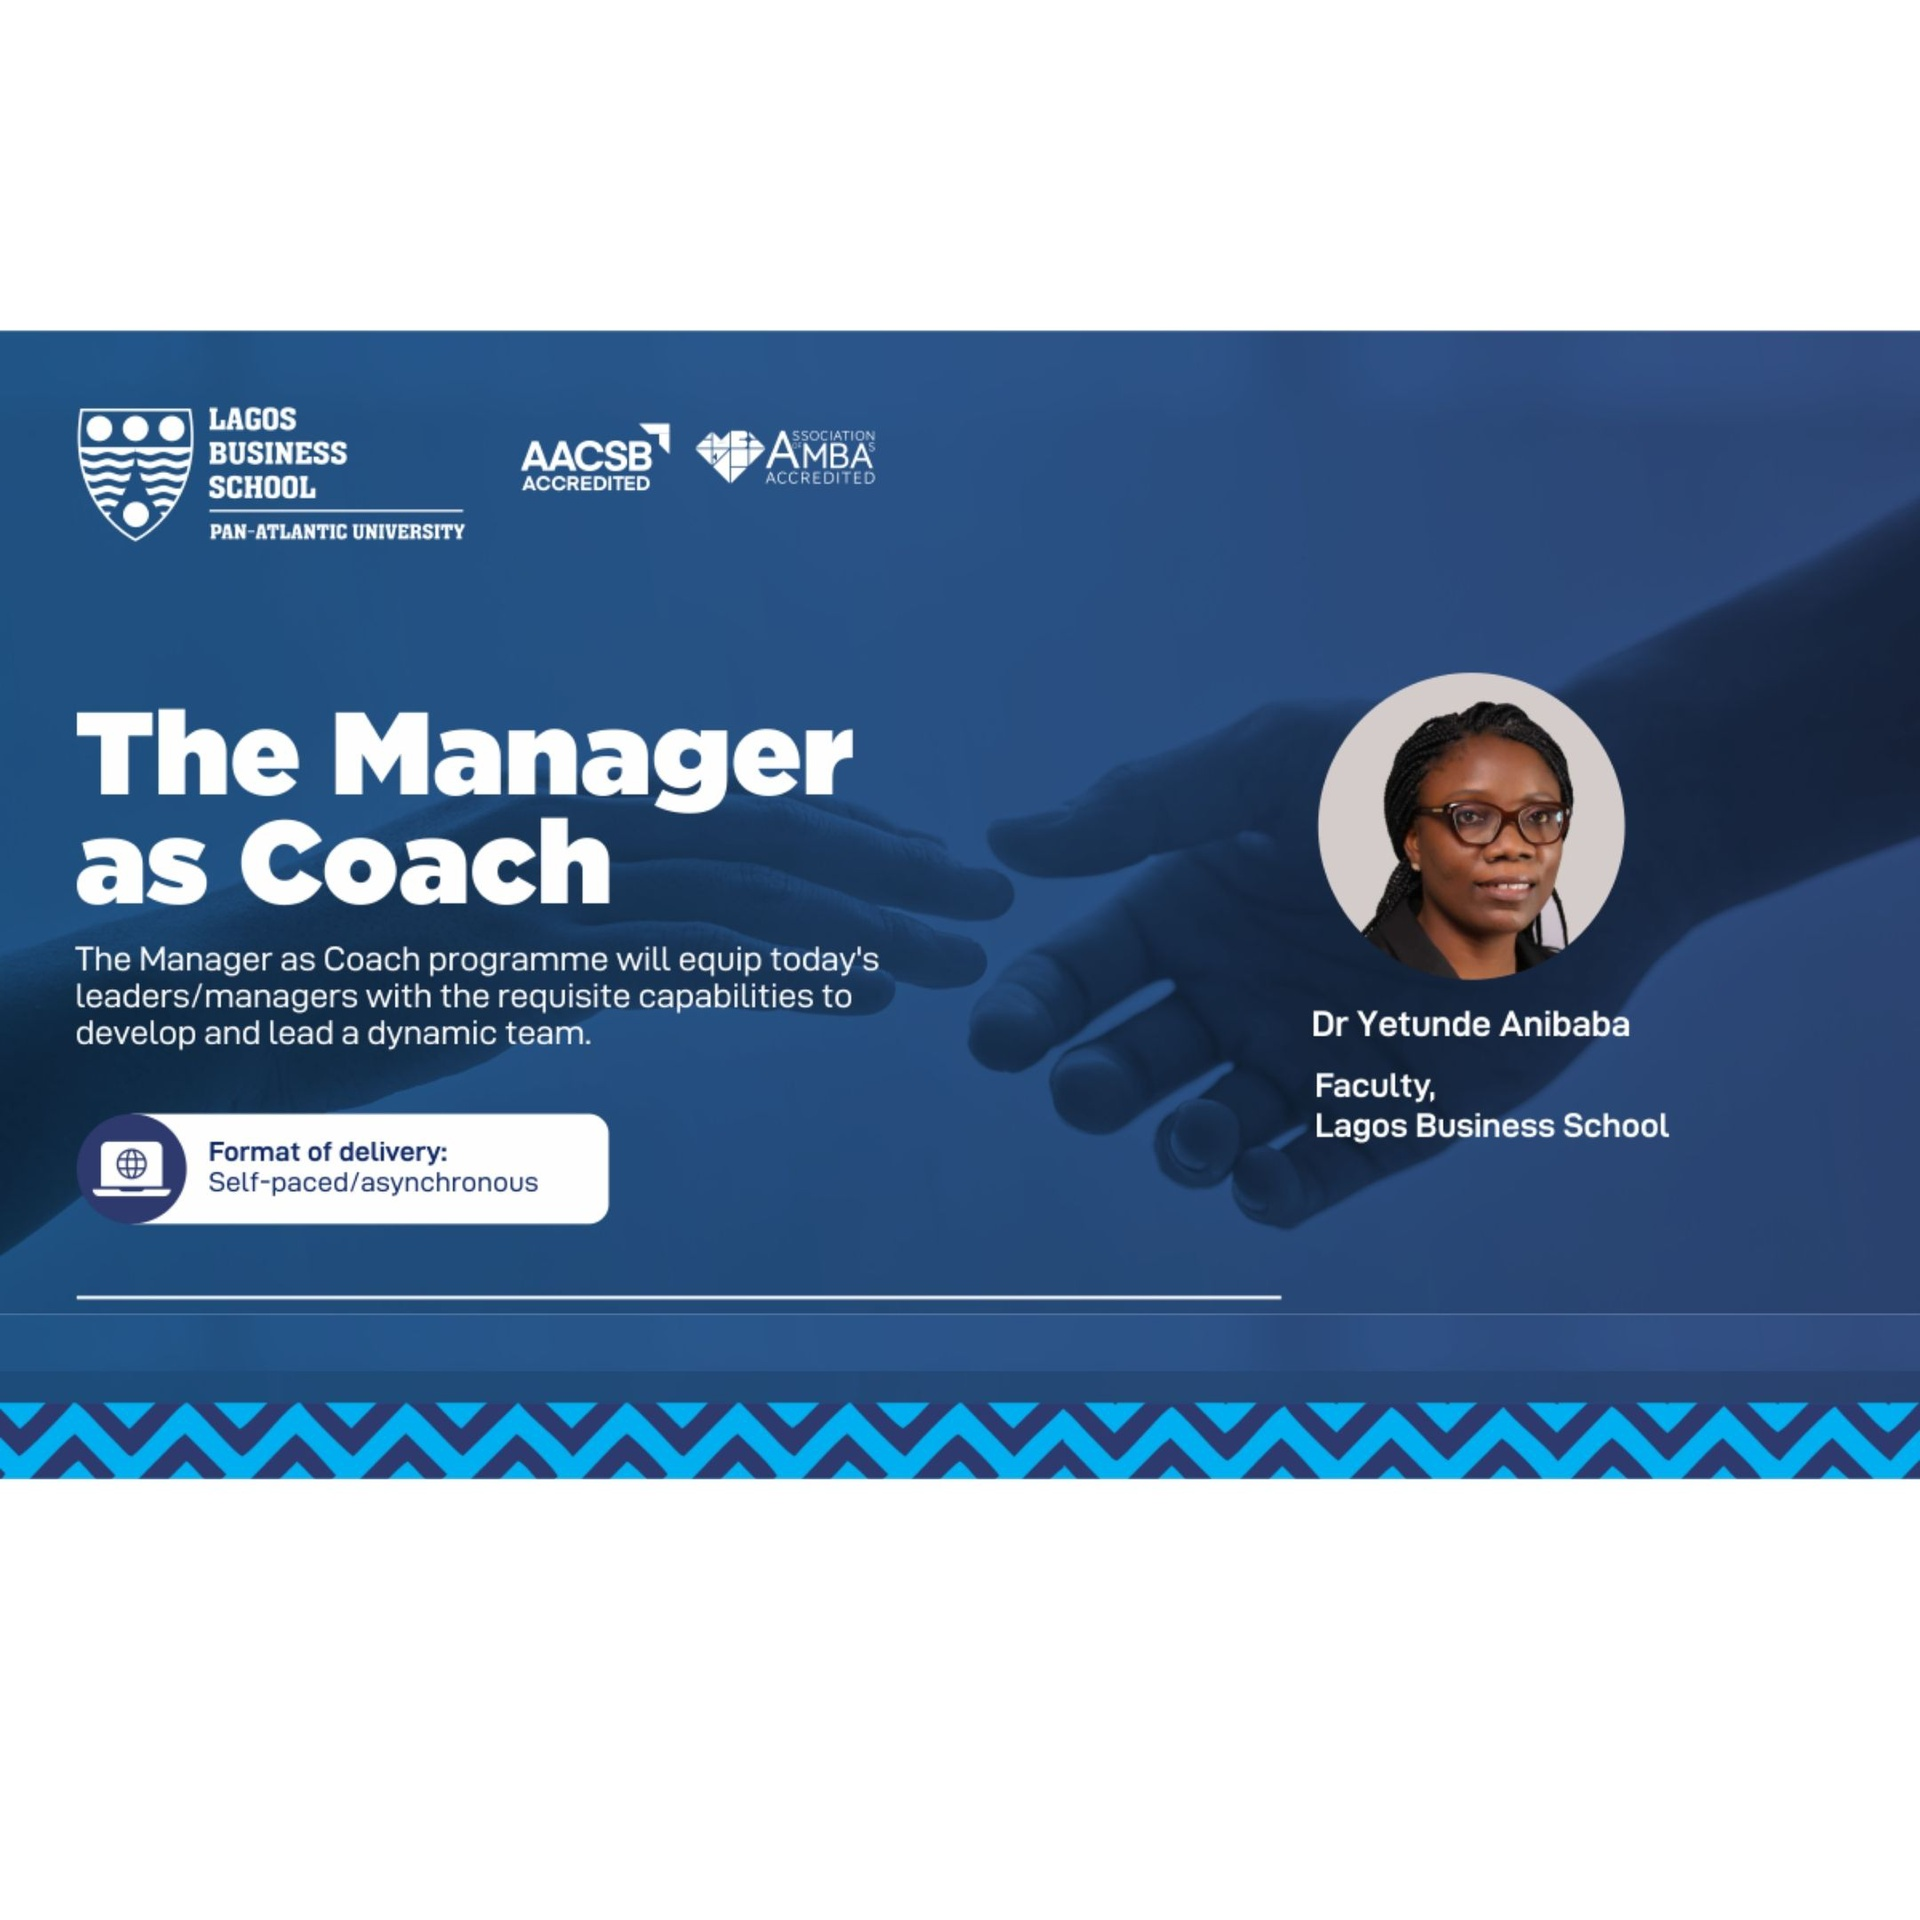 The Manager as Coach